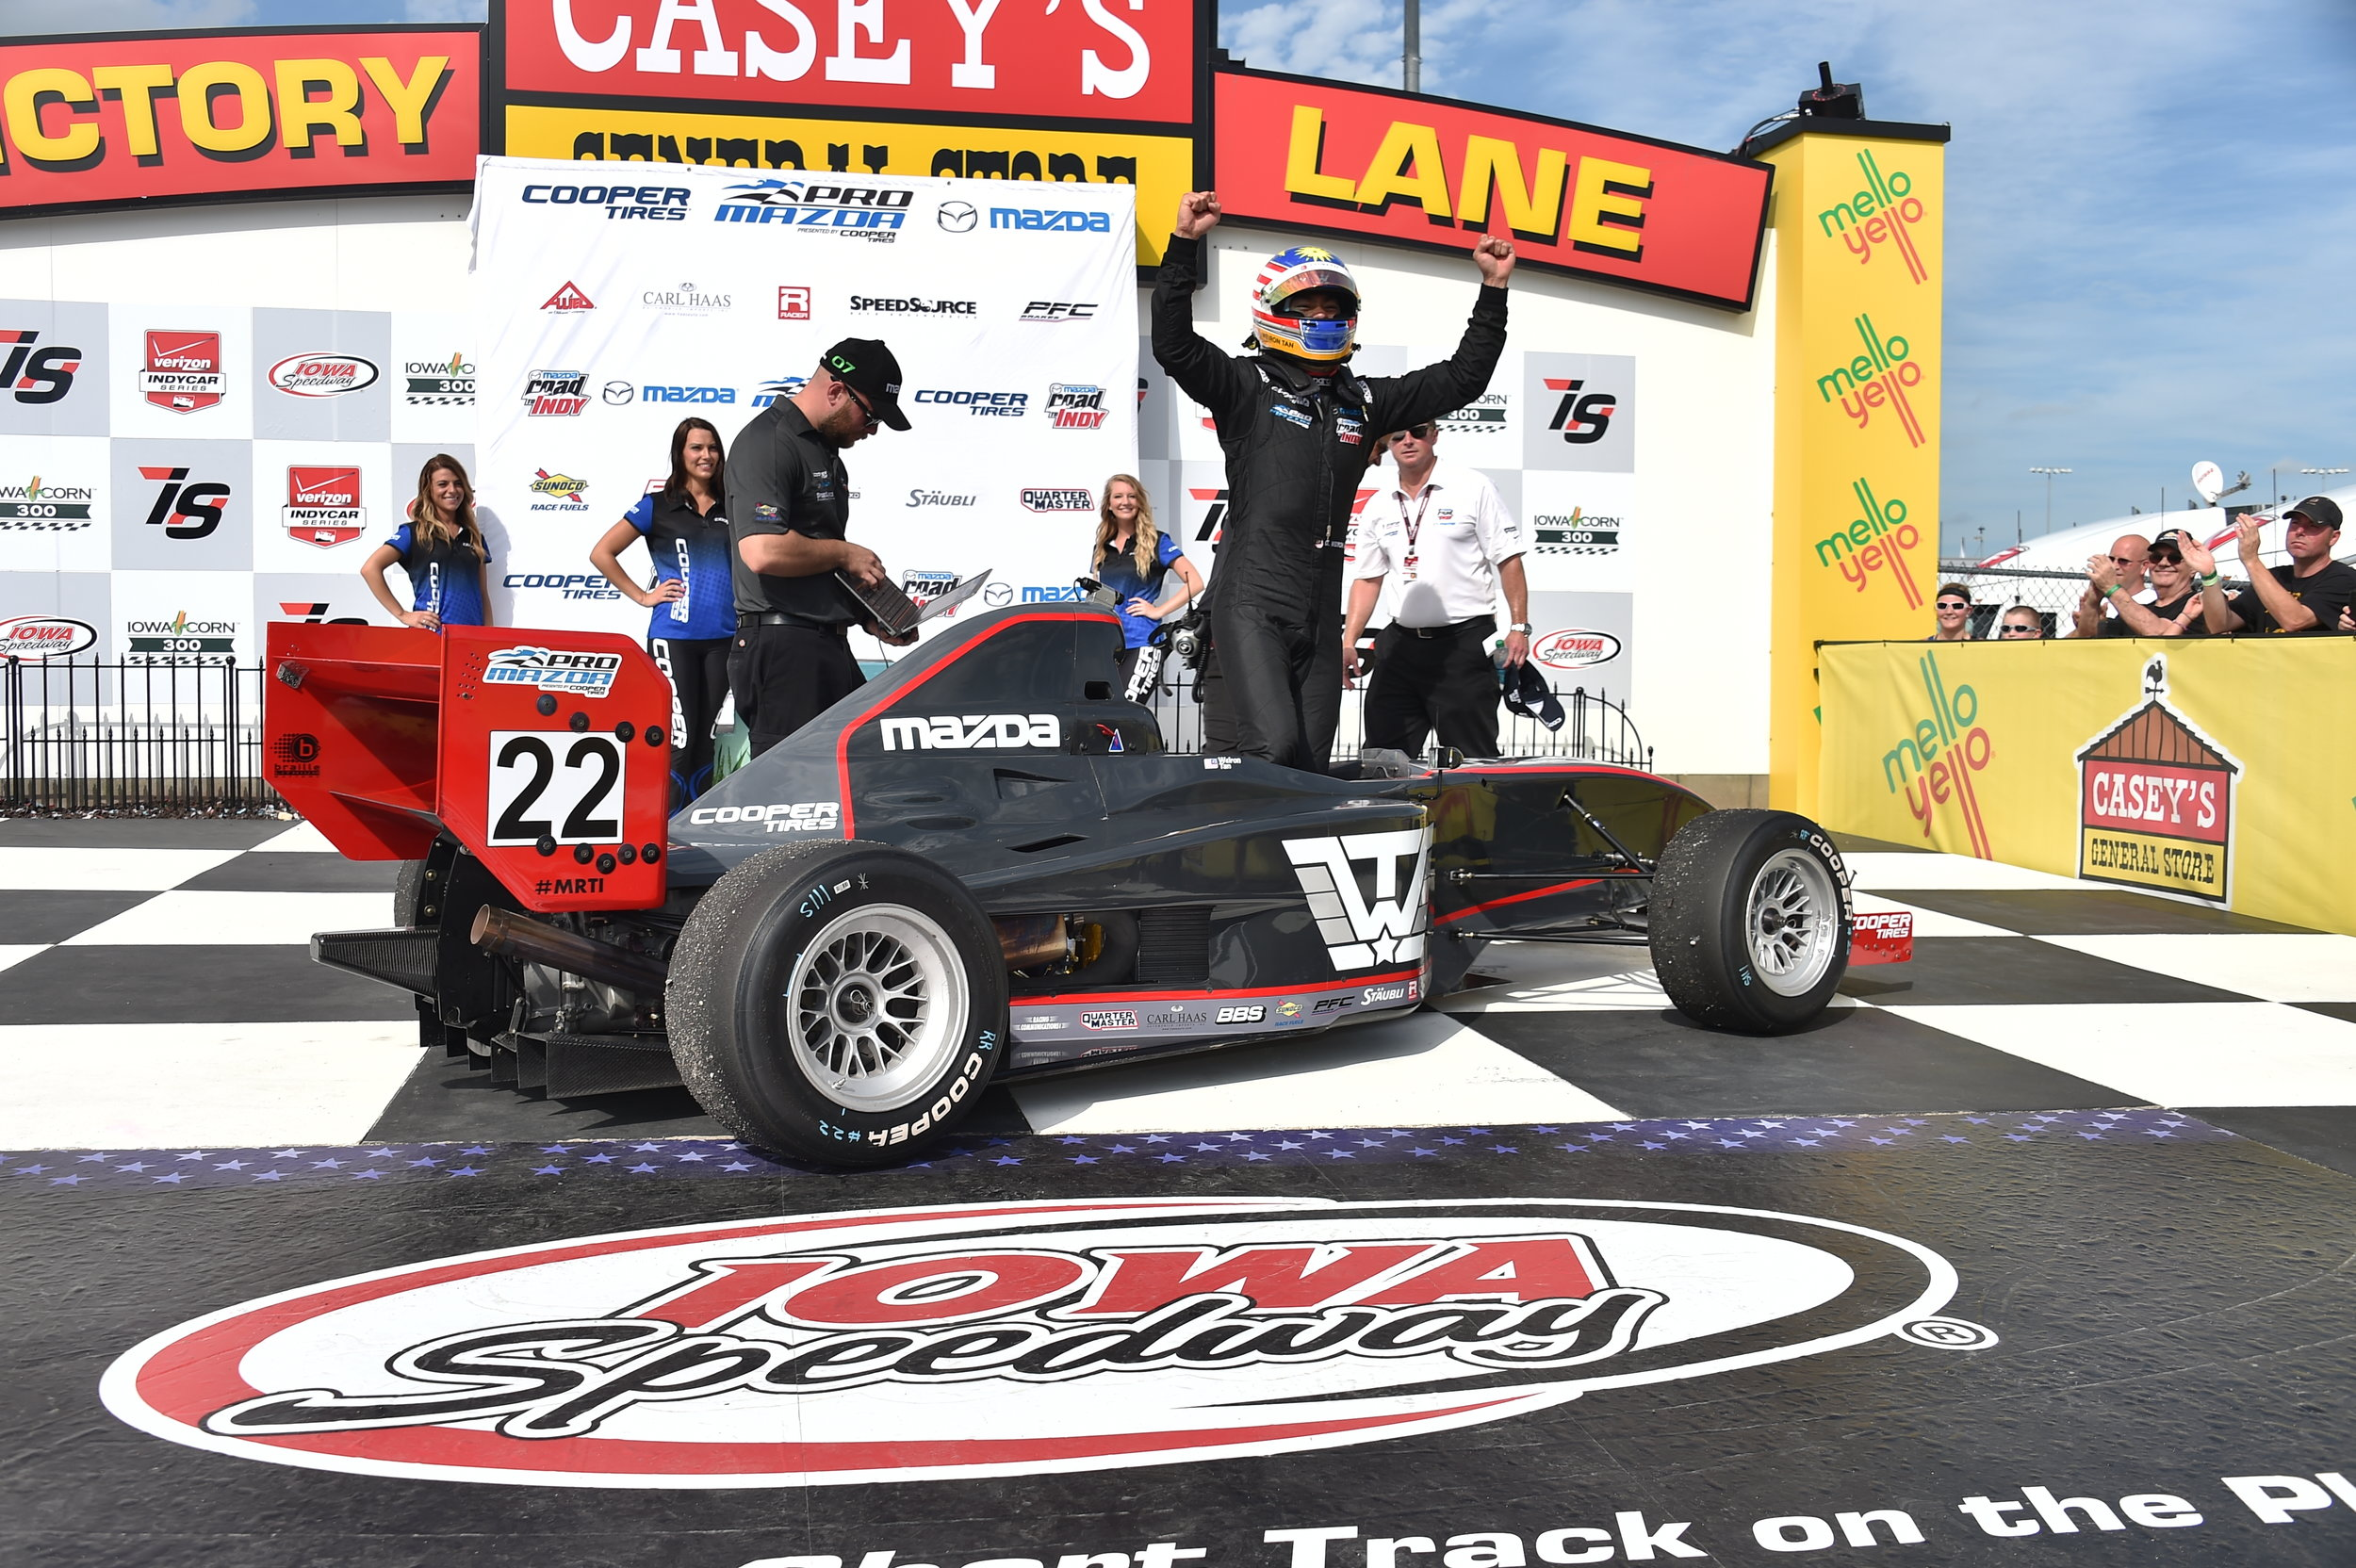 2015 - Pro Mazda Winterfest - 2ndPro Mazda Championship - 4th*First Malaysian in HISTORY to win a race in the USA